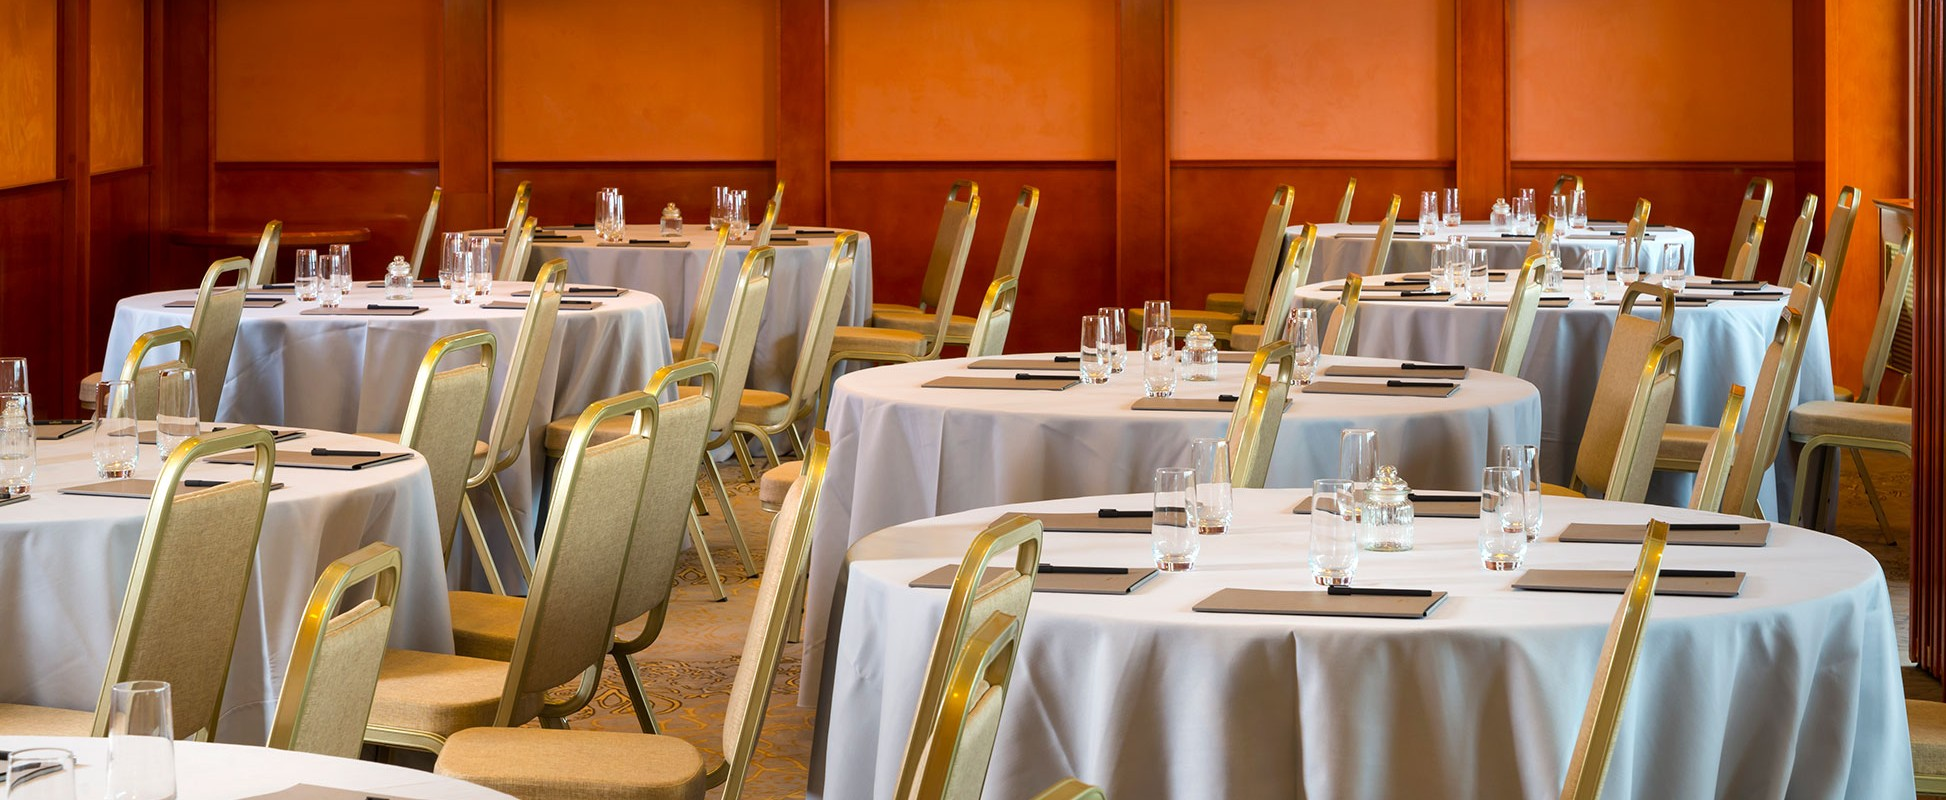 conference hotels London